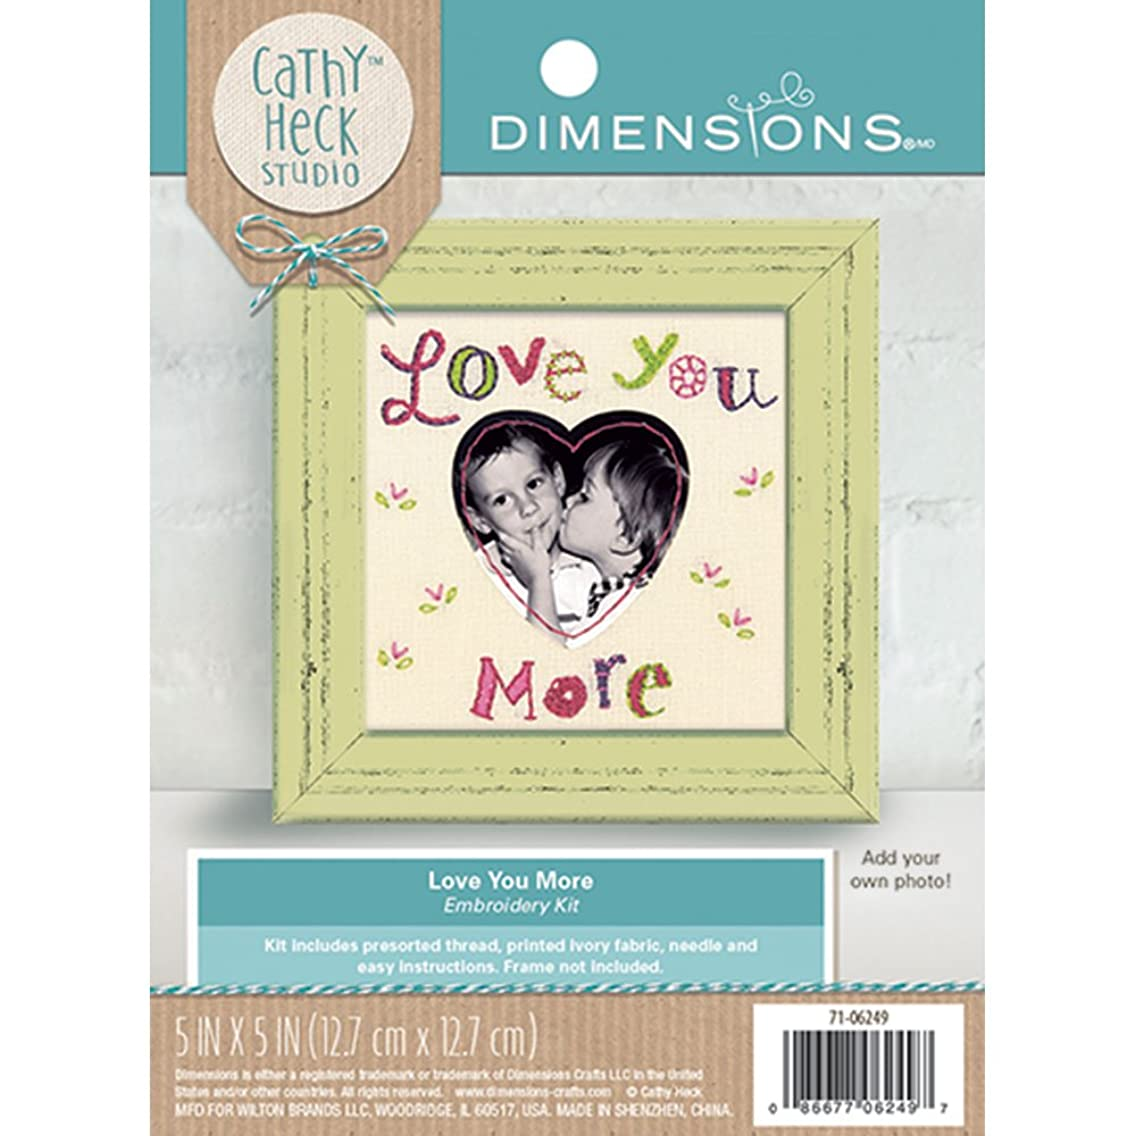 Dimensions Love You More' Photo Frame Embroidery Kit by Catchy Heck Studio, 5'' x 5''